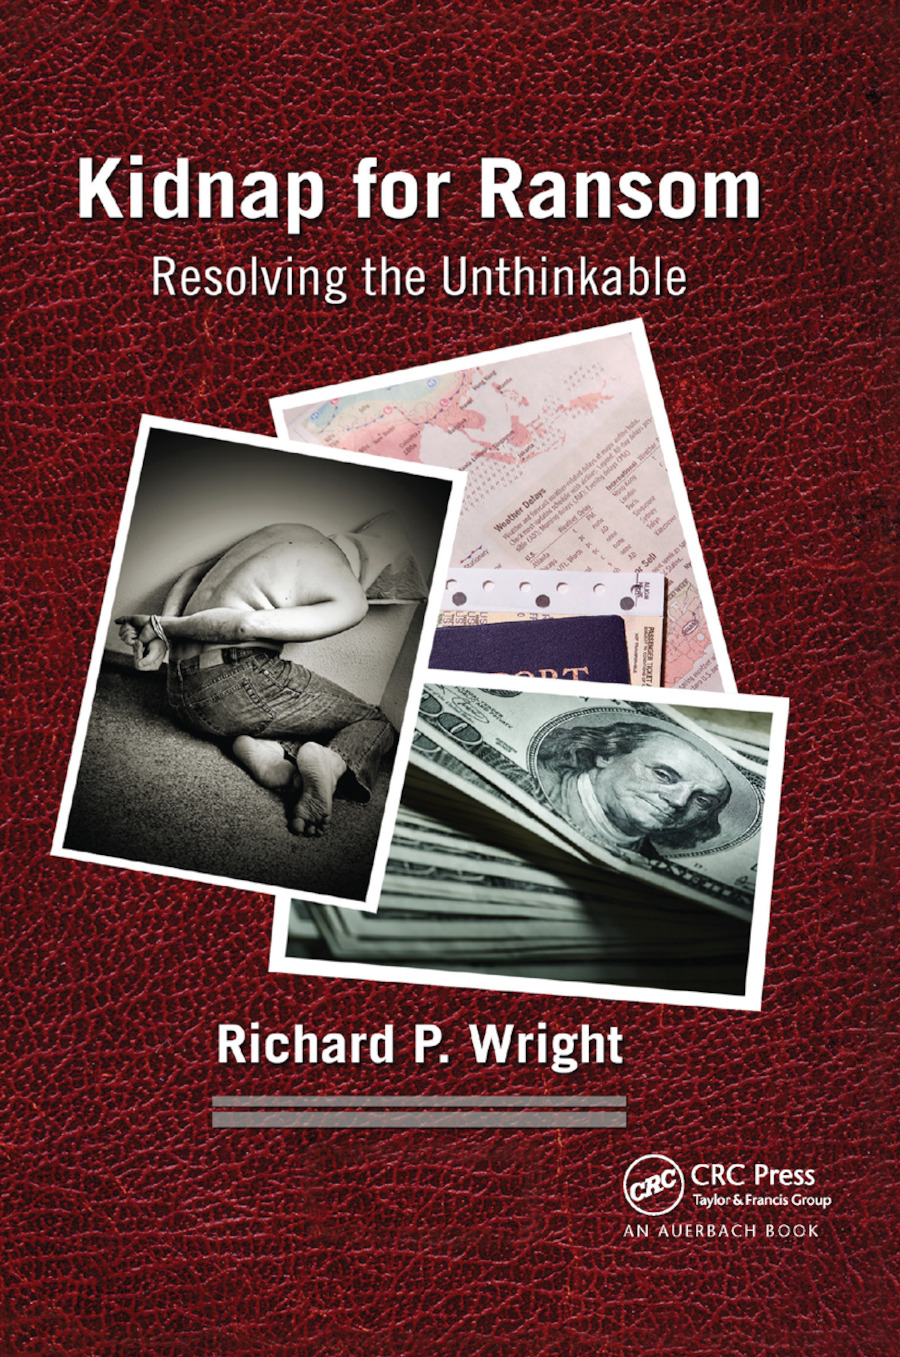 Kidnap for Ransom: Resolving the Unthinkable book cover